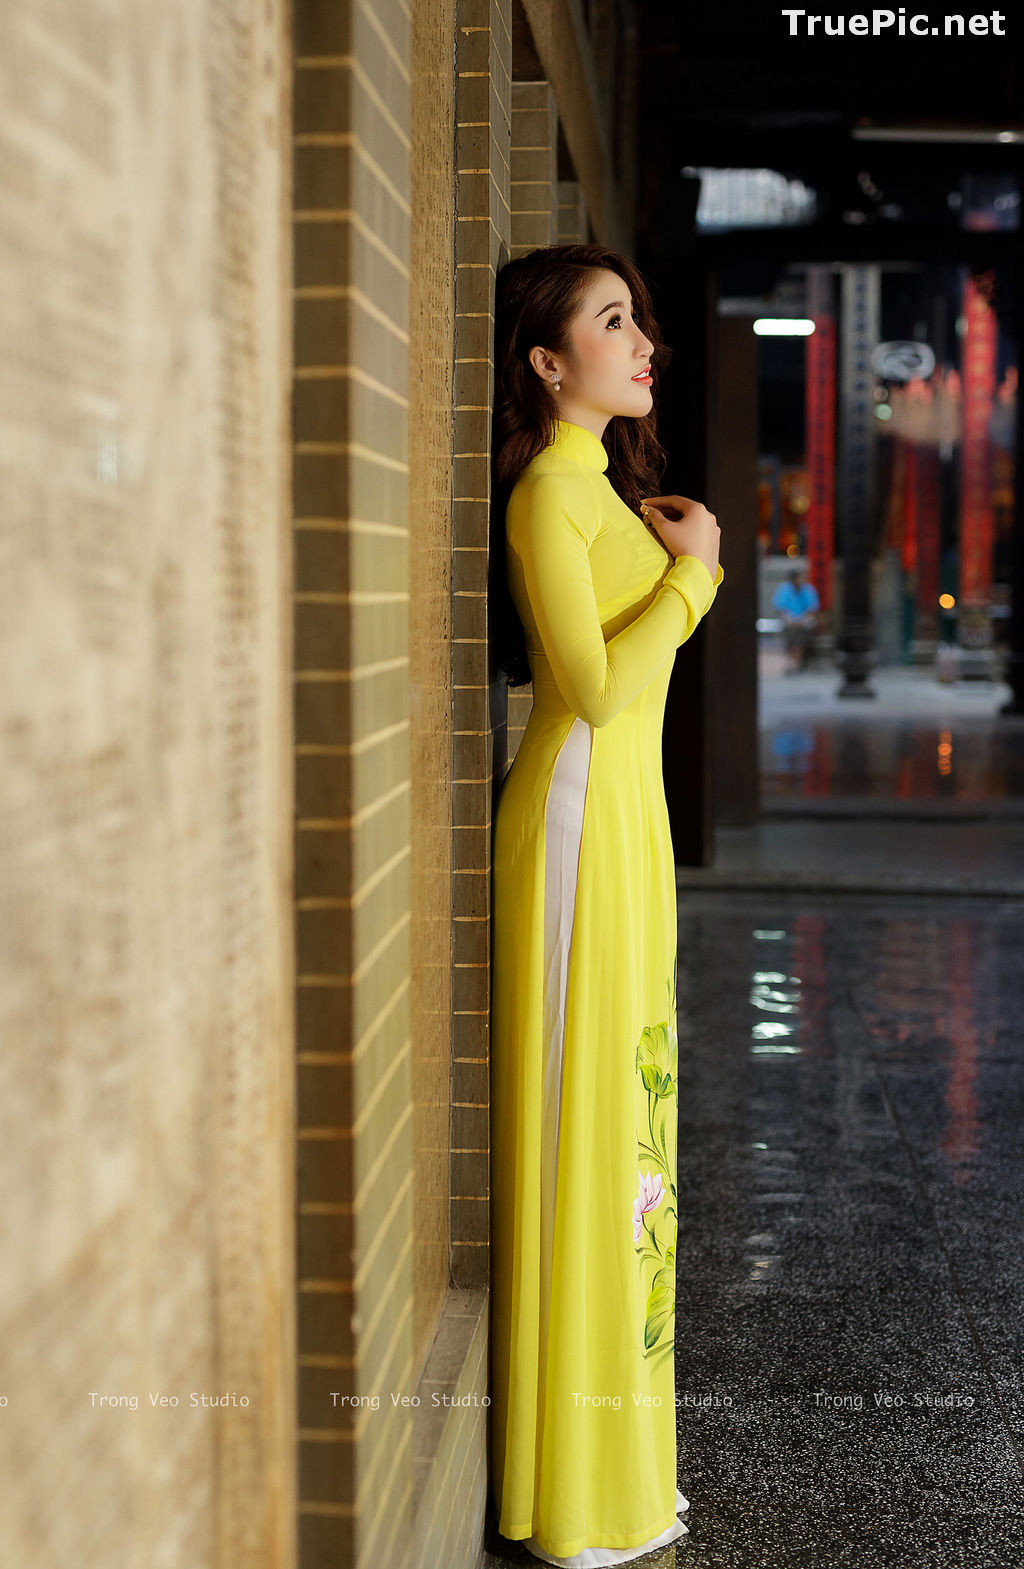 Image The Beauty of Vietnamese Girls with Traditional Dress (Ao Dai) #4 - TruePic.net - Picture-9